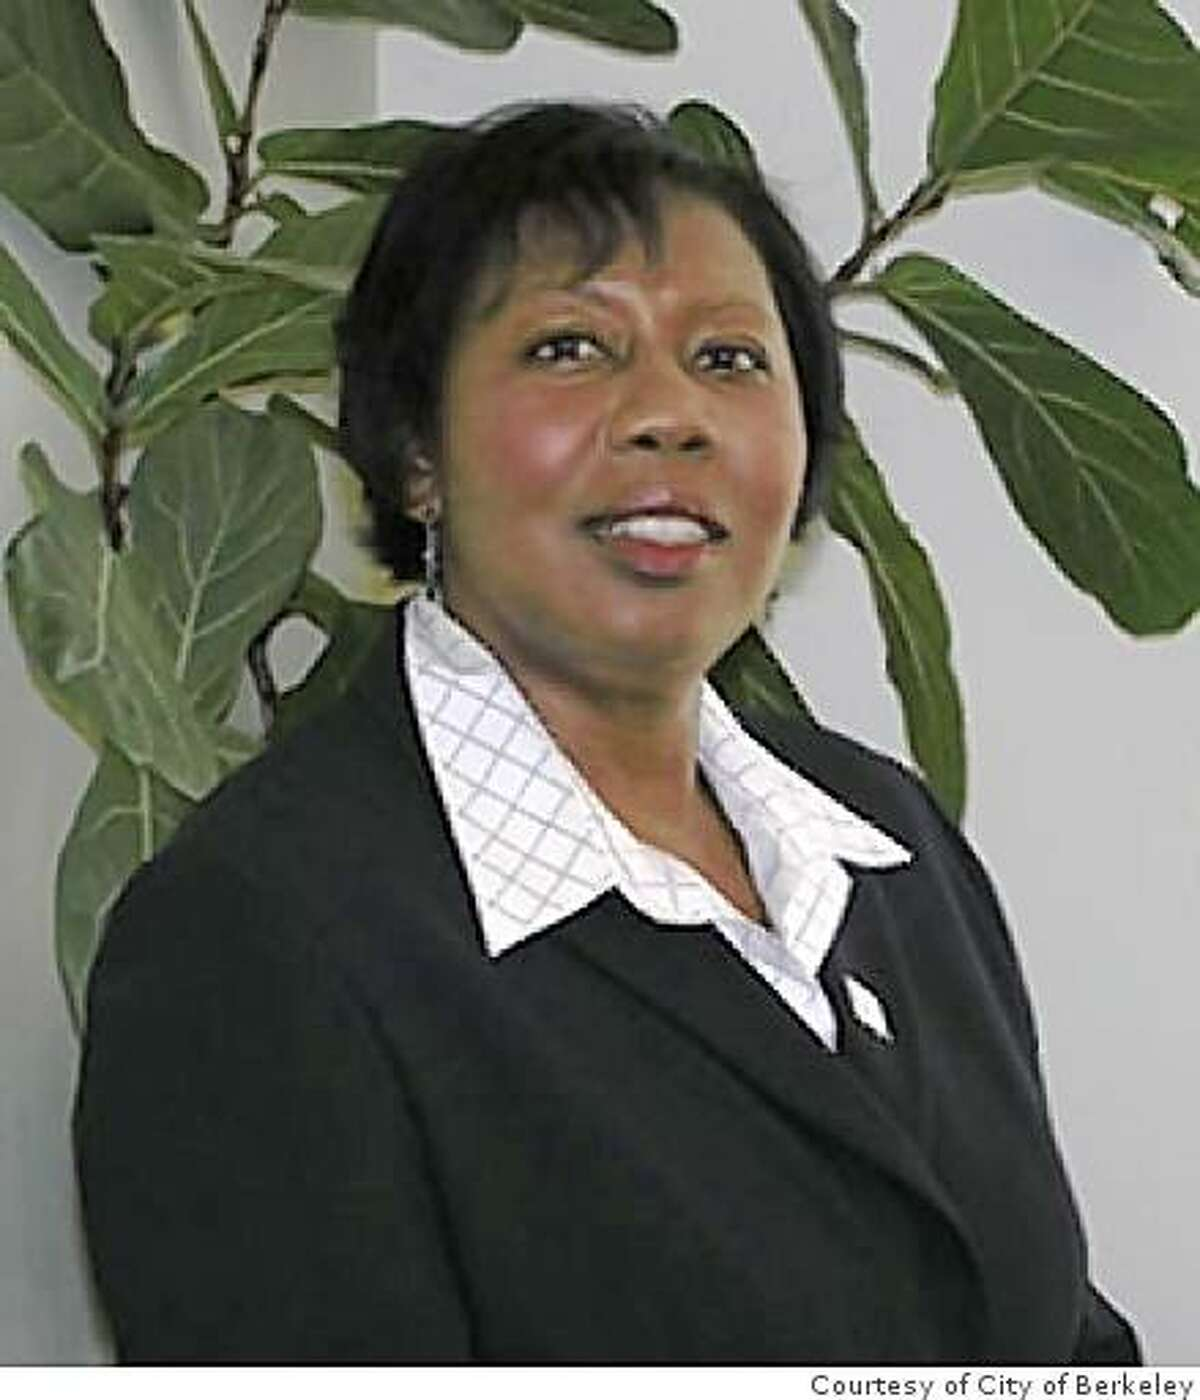 Photo of Berkeley Public Works director, Claudette Ford